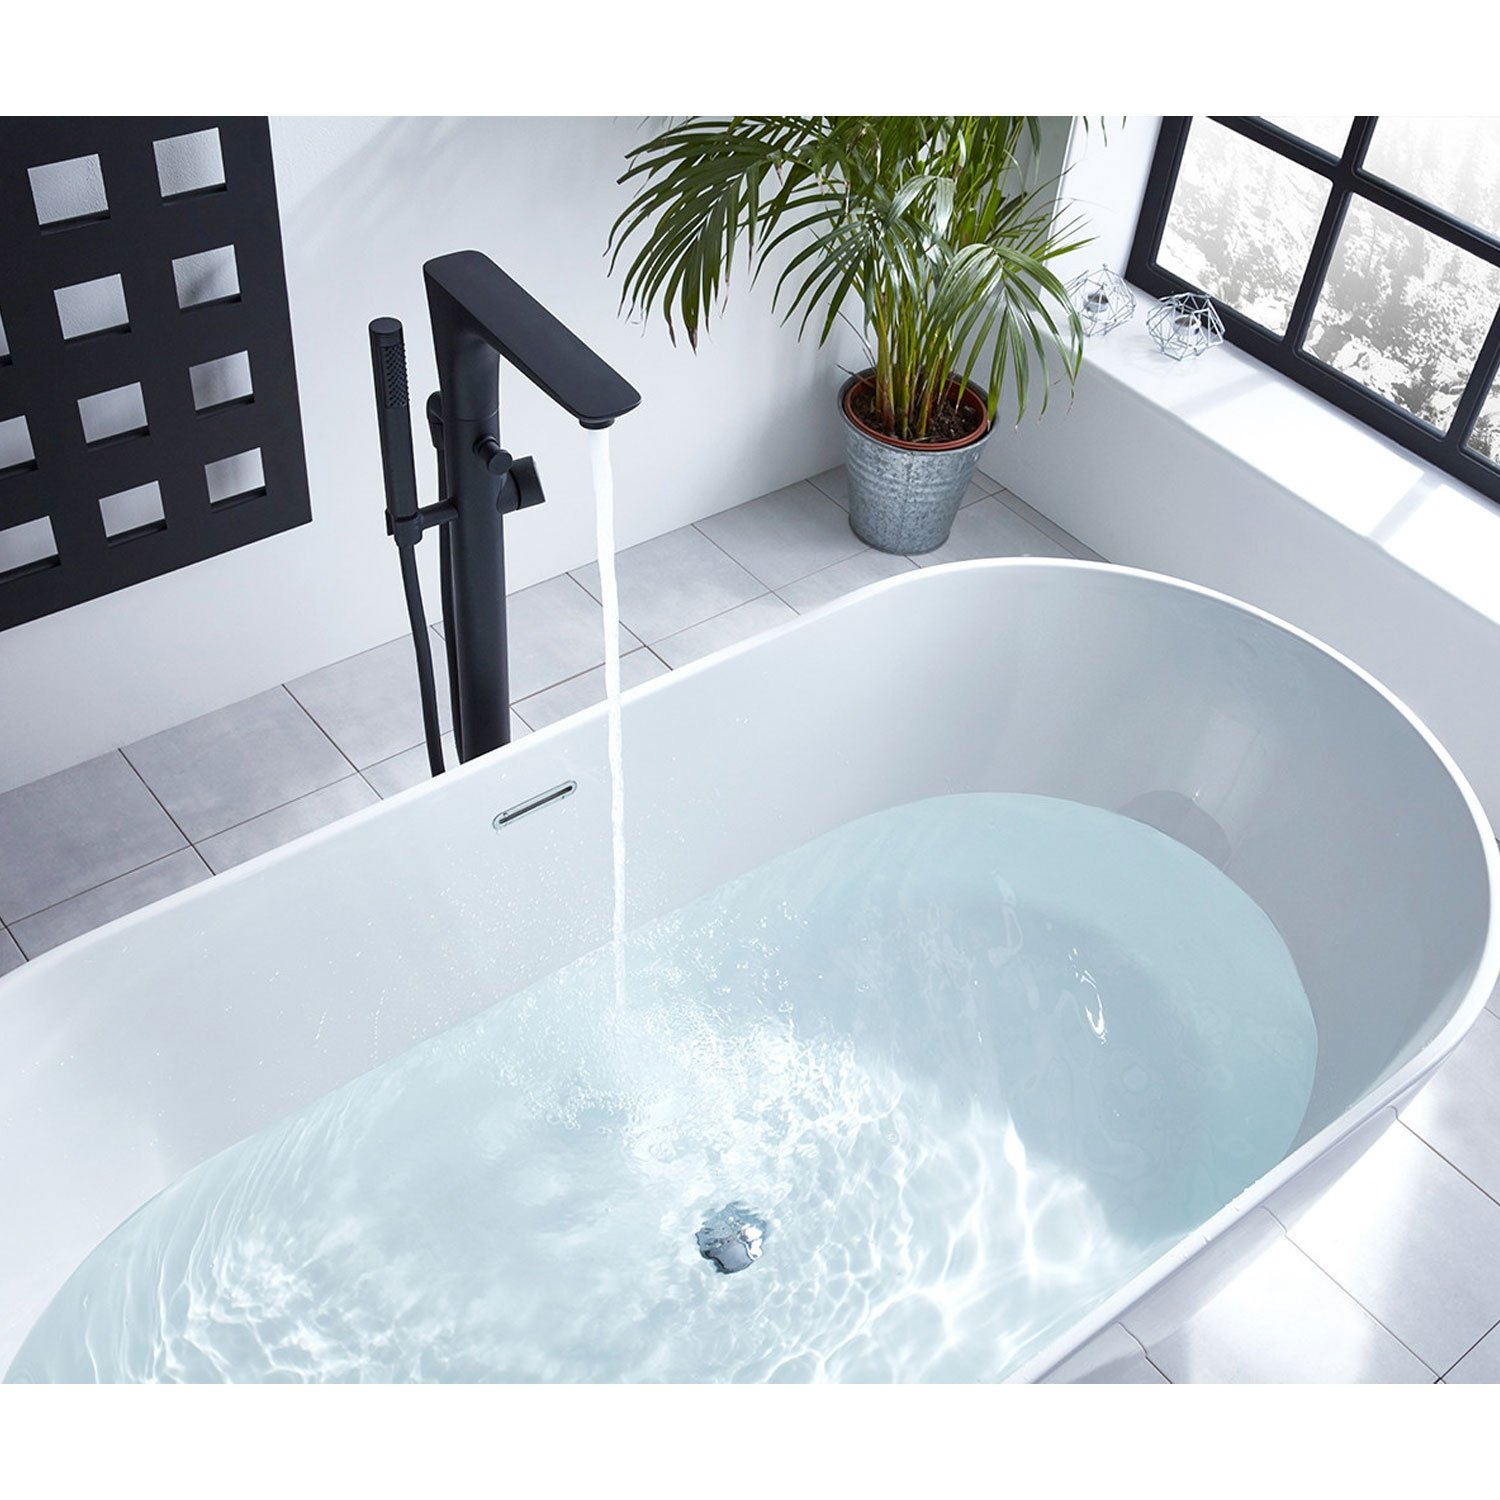 Verona Vibe Freestanding Bath Shower Mixer Tap with Shower Handset - Black